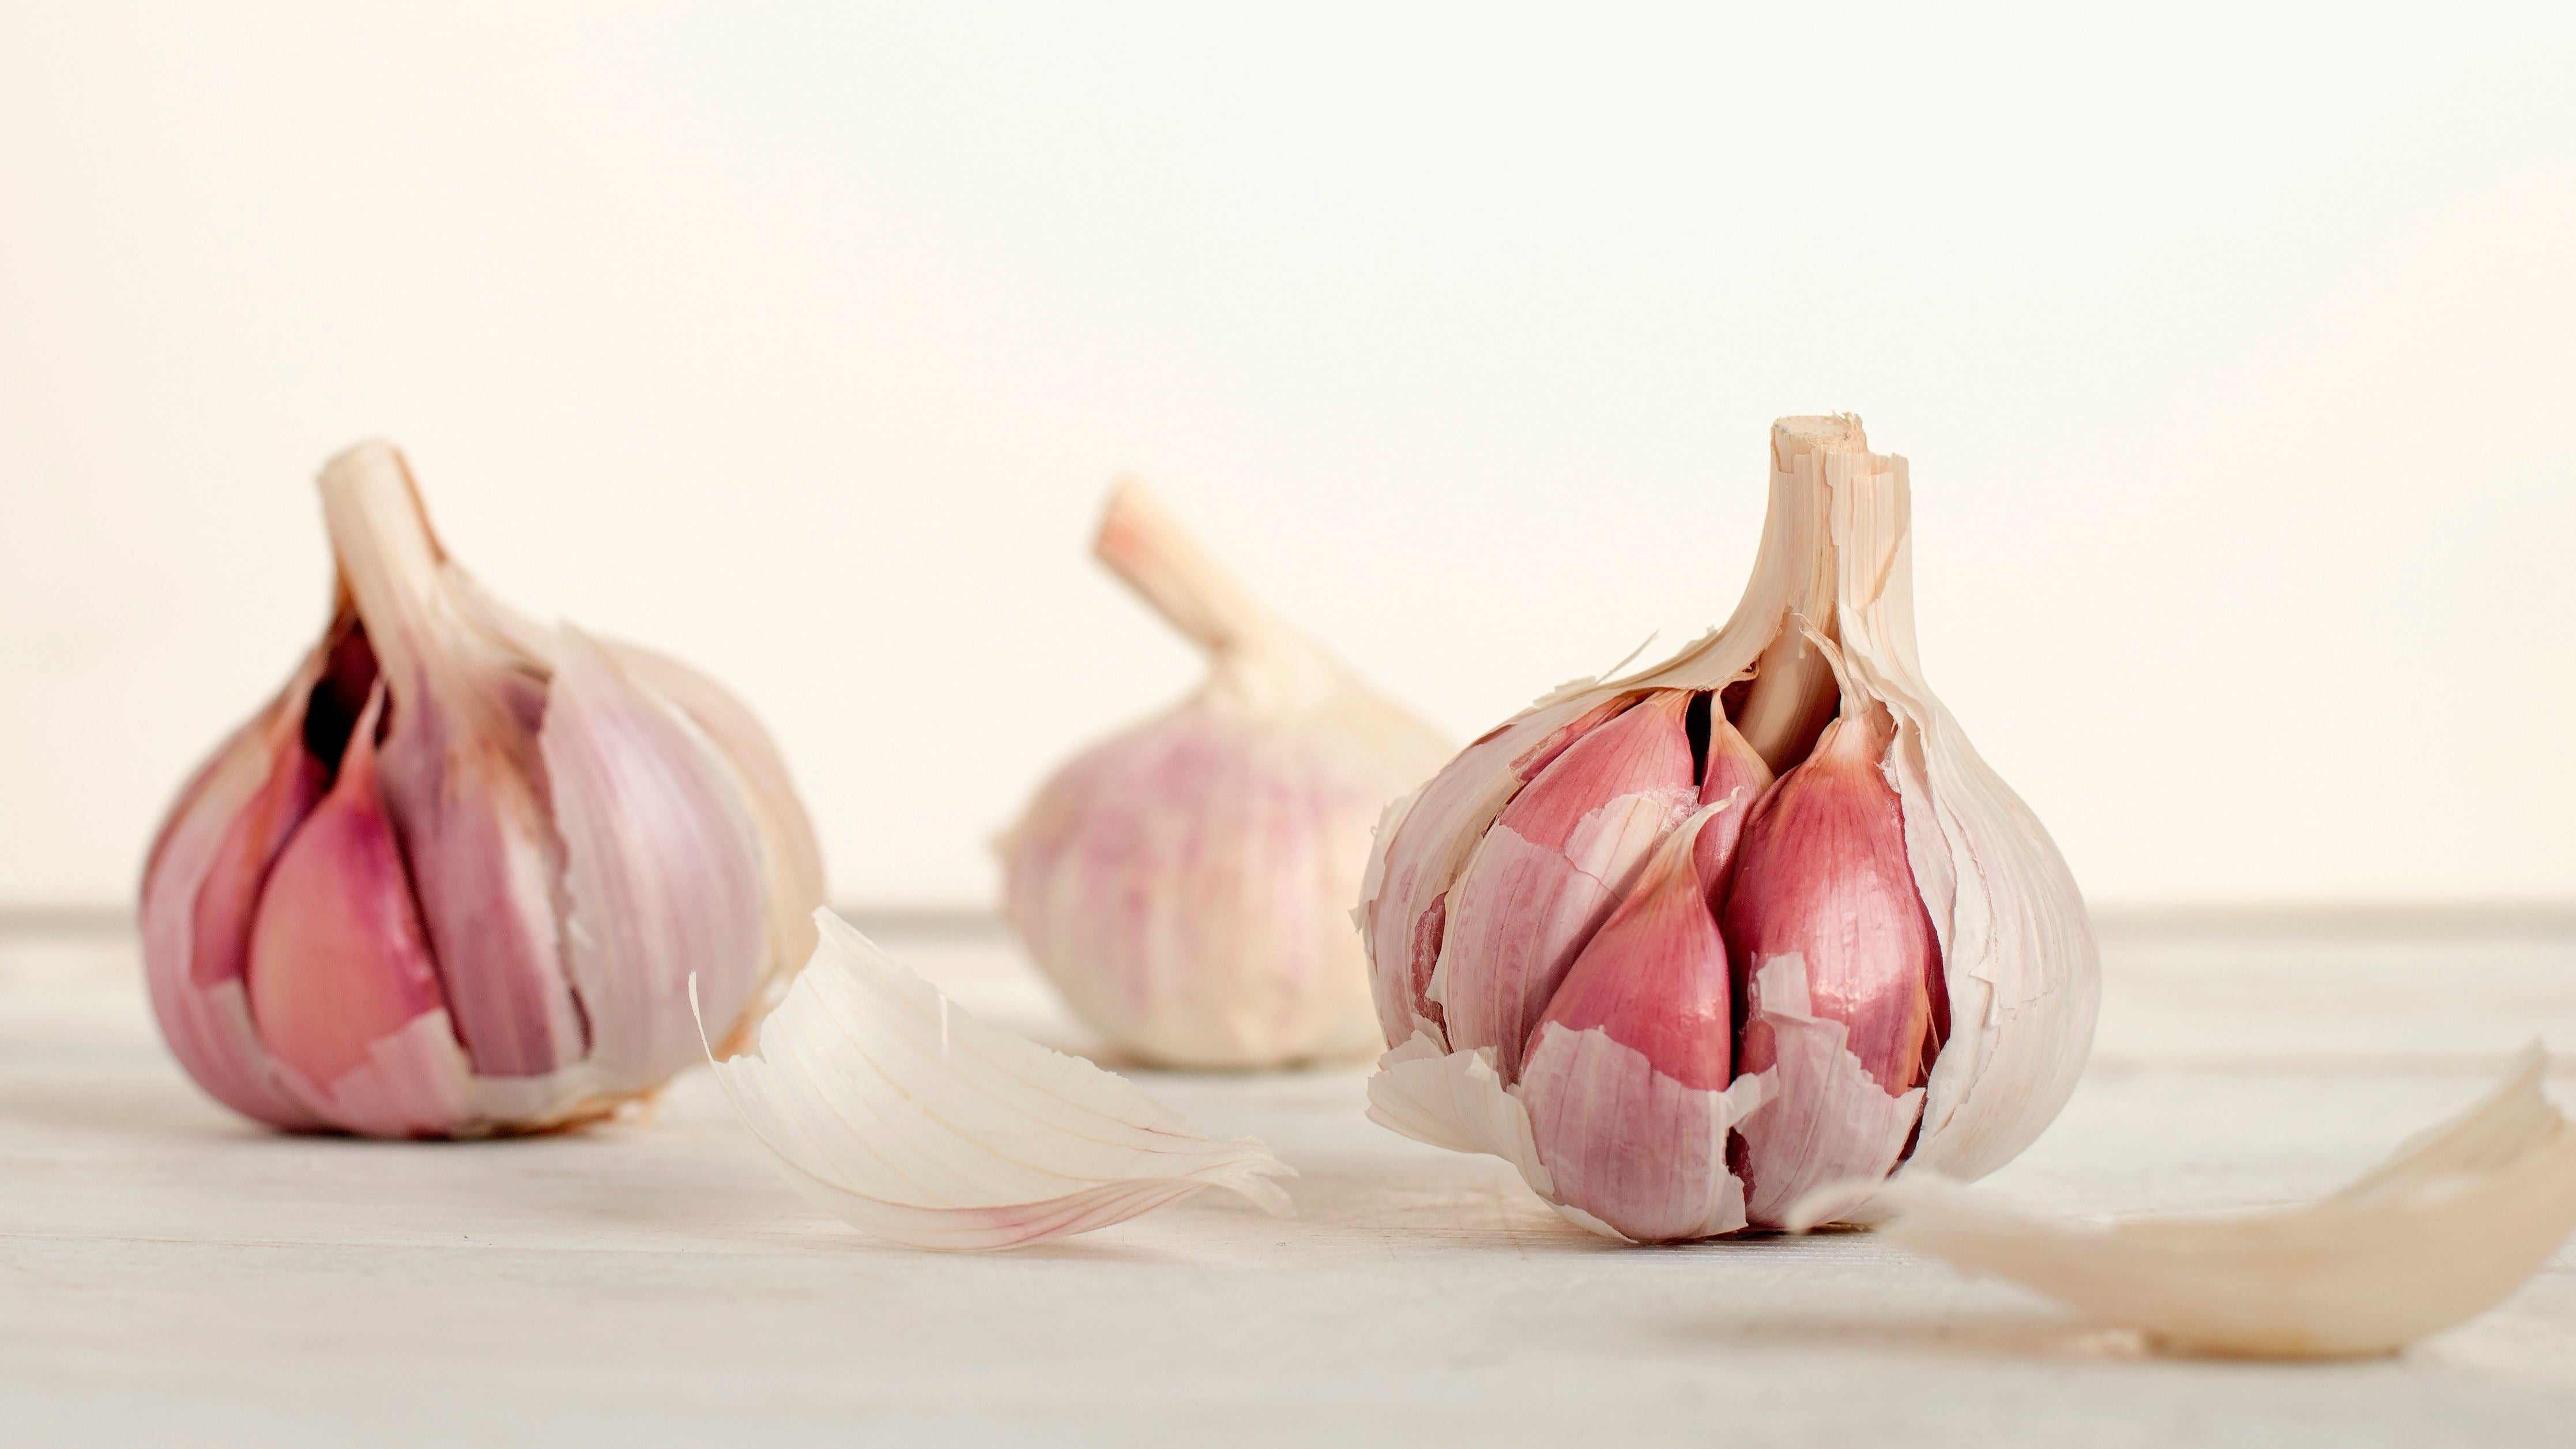 Cook Garlic Before Adding It To Your Sous Vide Bag